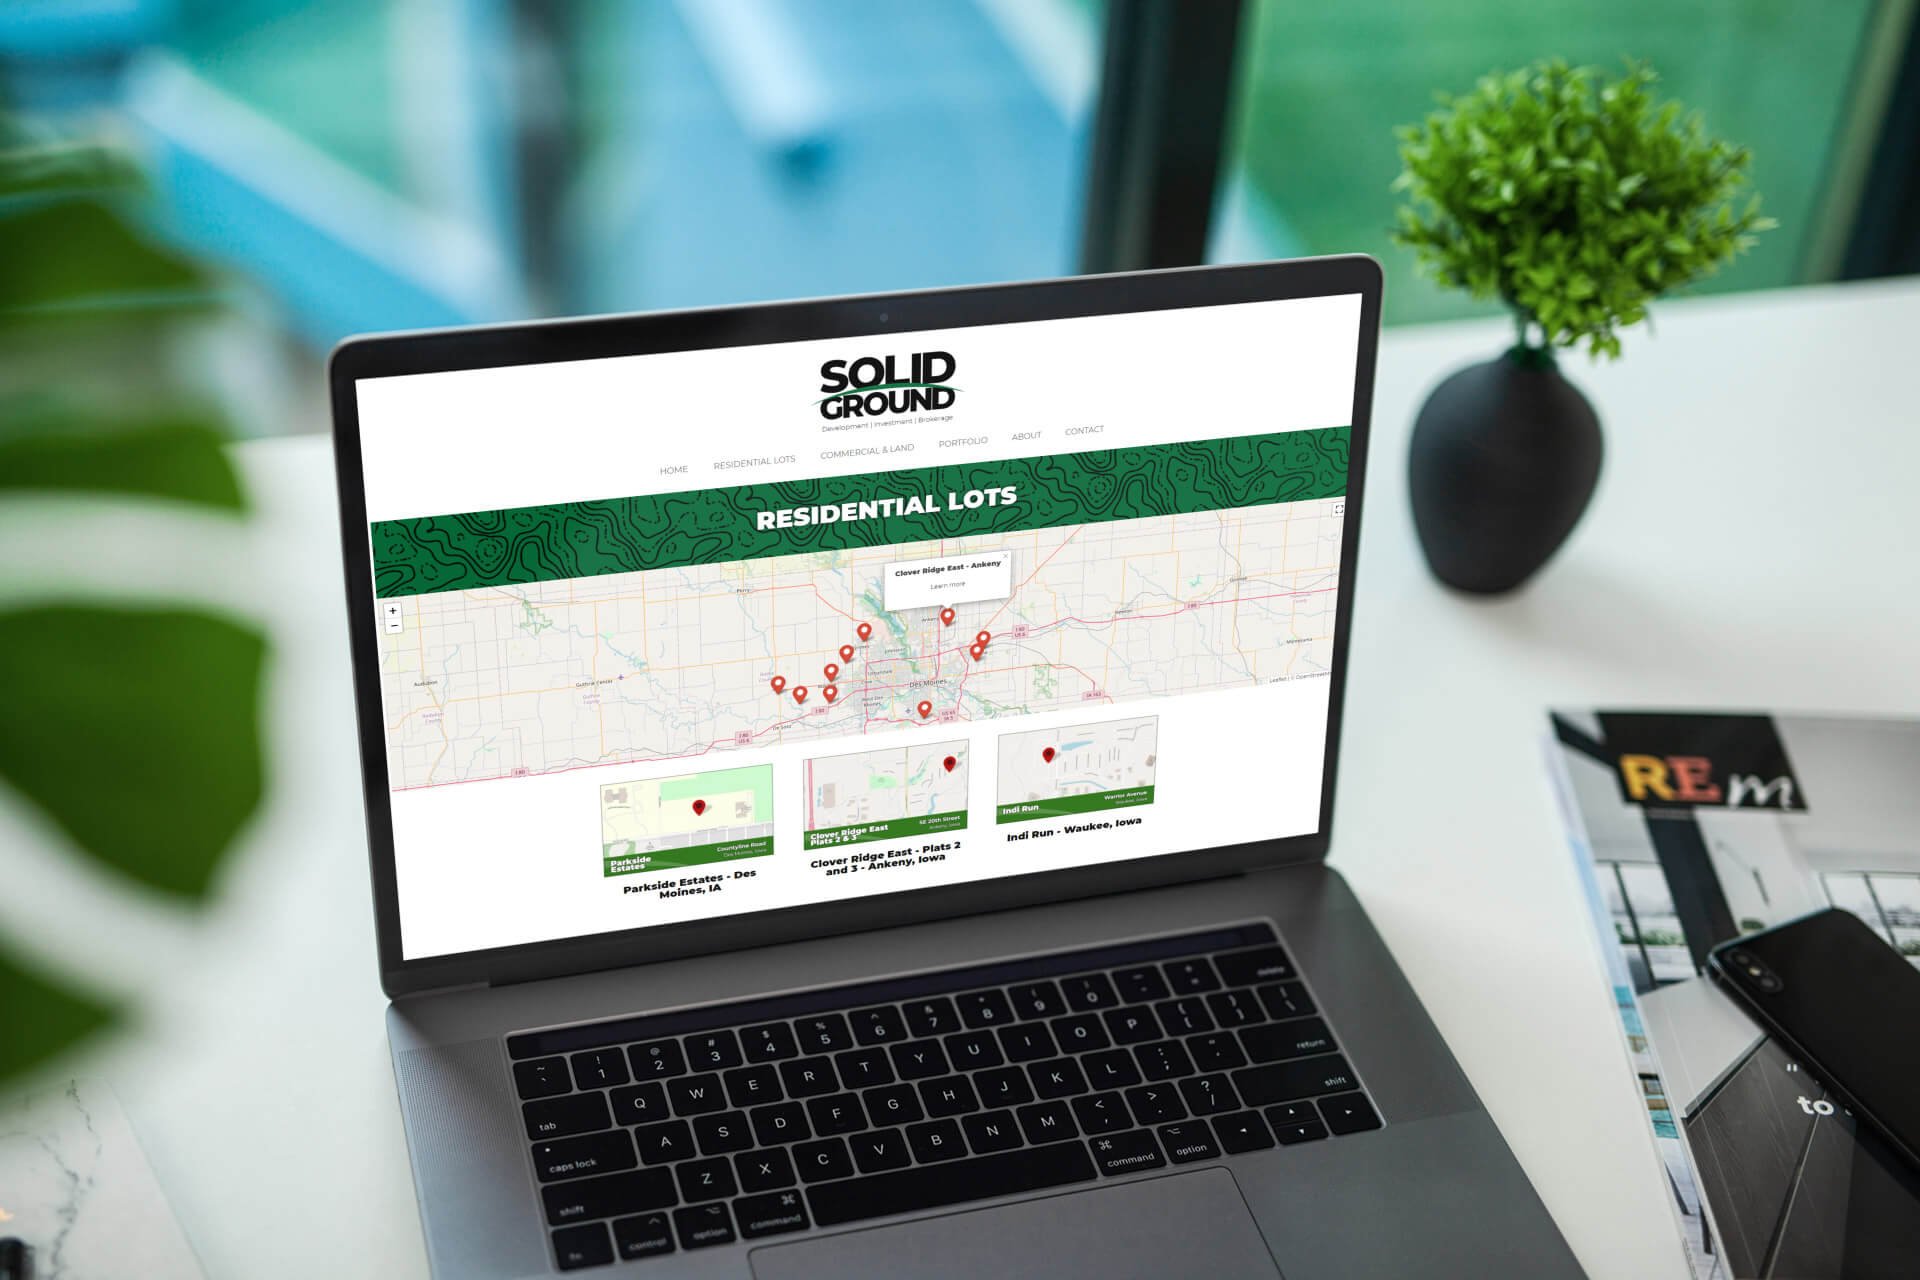 Website Design for Land Development Company, Solid Ground in Des Moines, Iowa